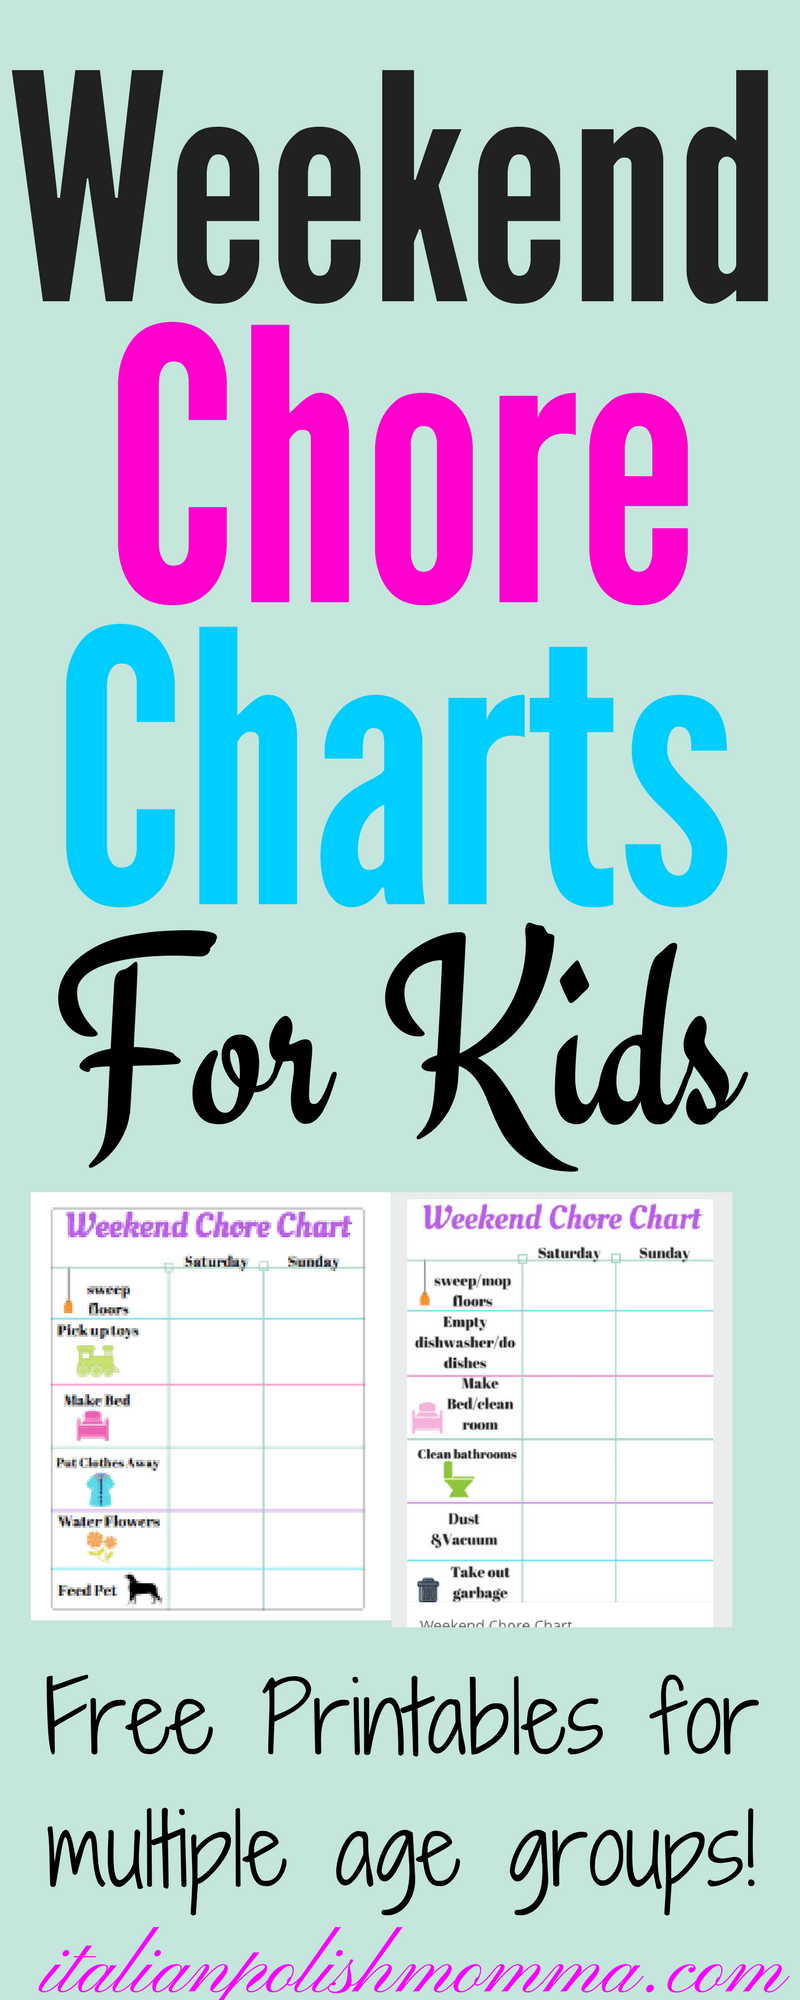 Weekend chore chart for kids italianpolishmomma chore charts for kids nvjuhfo Choice Image